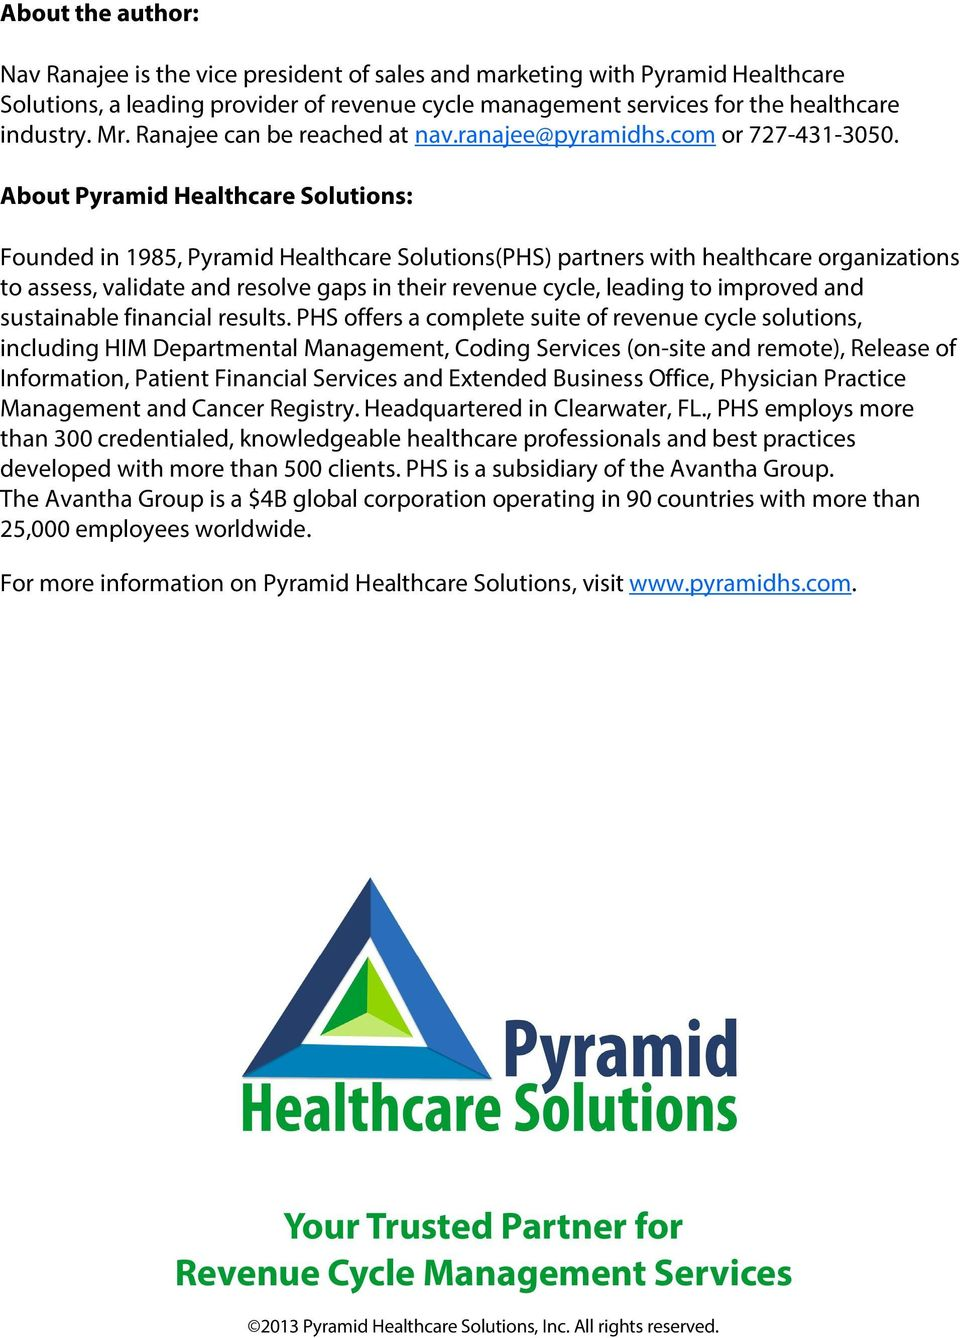 About Pyramid Healthcare Solutions: Founded in 1985, Pyramid Healthcare Solutions(PHS) partners with healthcare organizations to assess, validate and resolve gaps in their revenue cycle, leading to